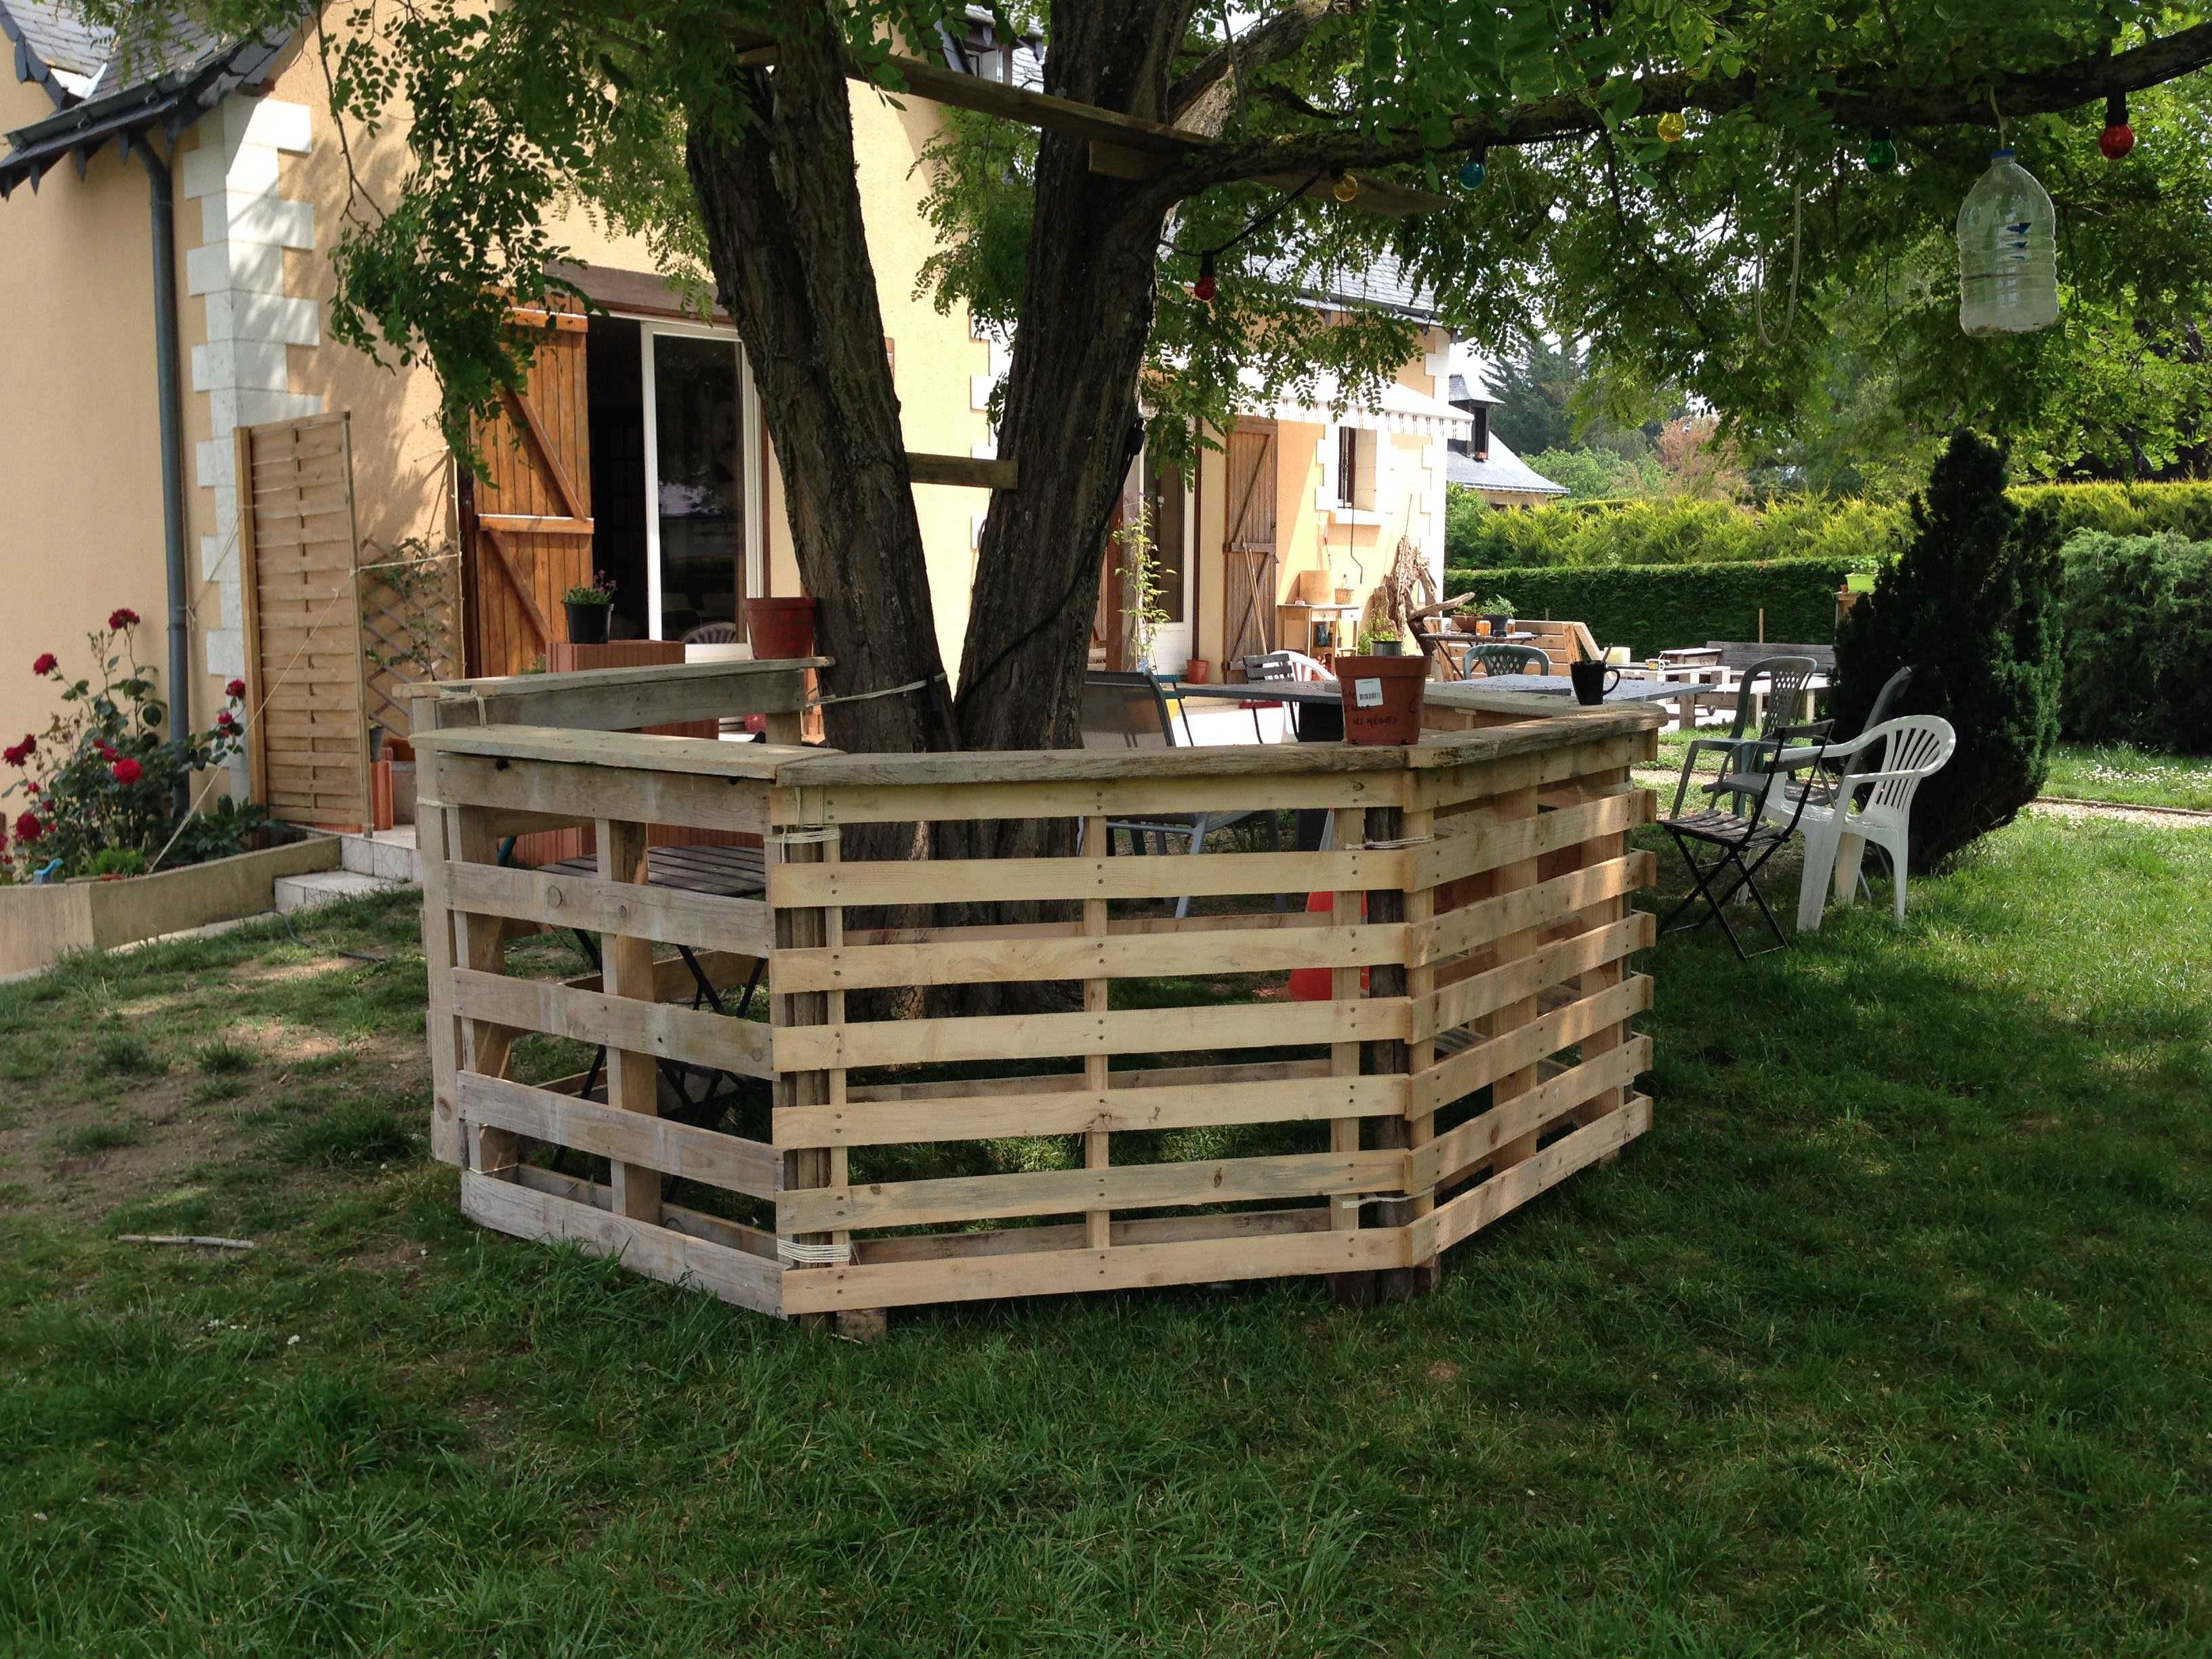 Bar Au Vert / Garden Pallets Bar | Yard games, Garden pallet and Bar